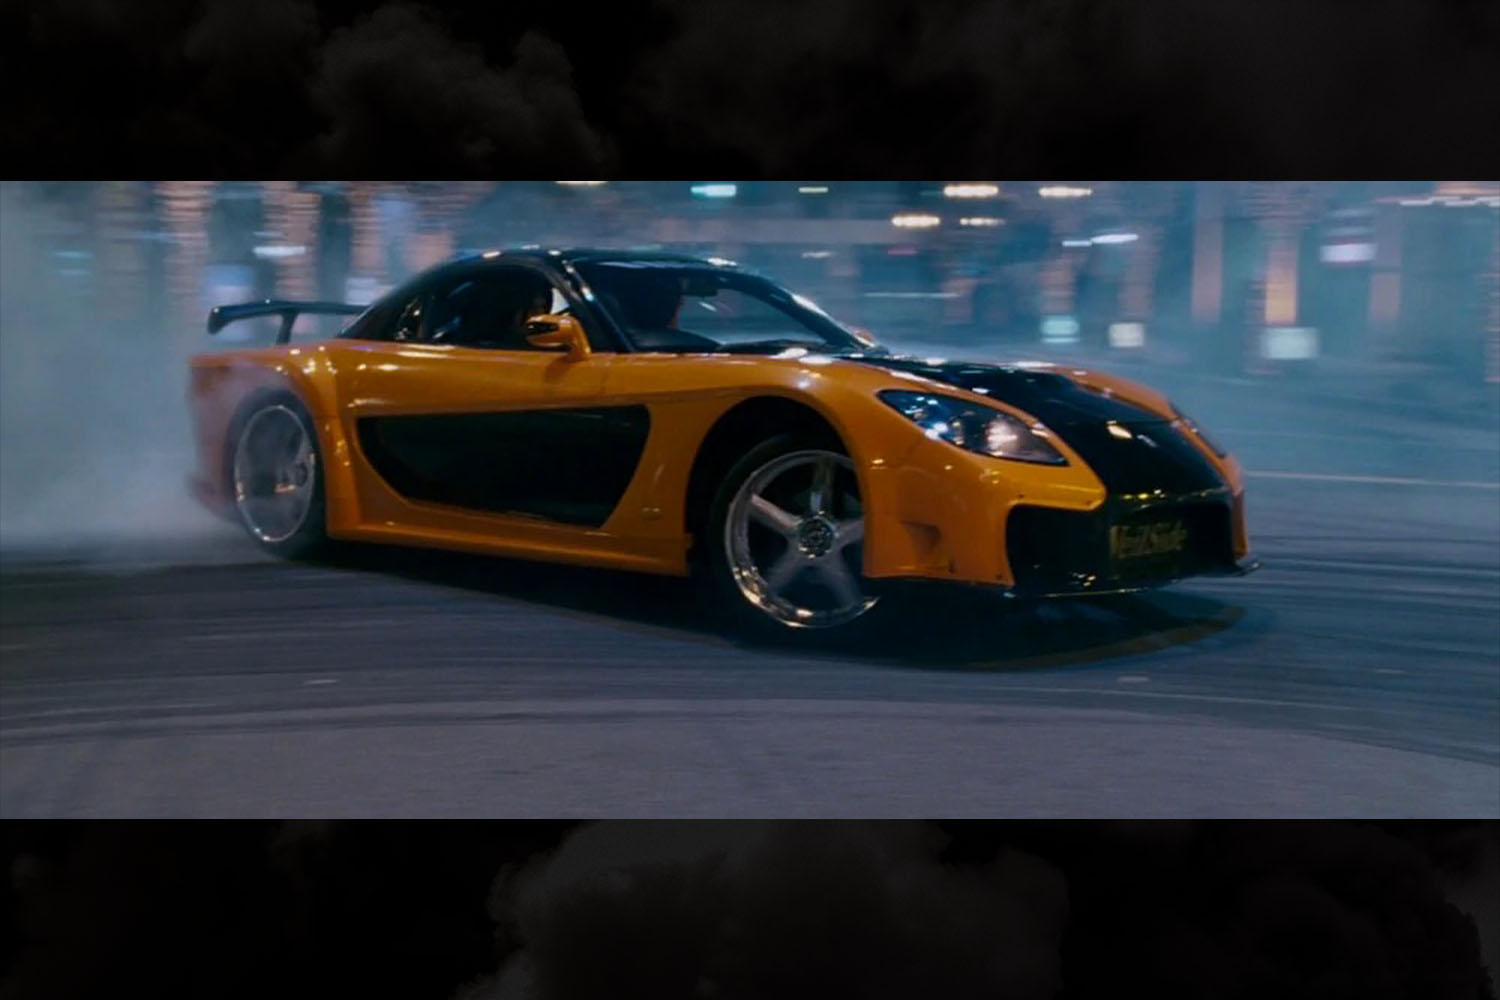 The orange and black 1997 Mazda RX-7 Veilside driven by Han in The Fast and the Furious: Tokyo Drift